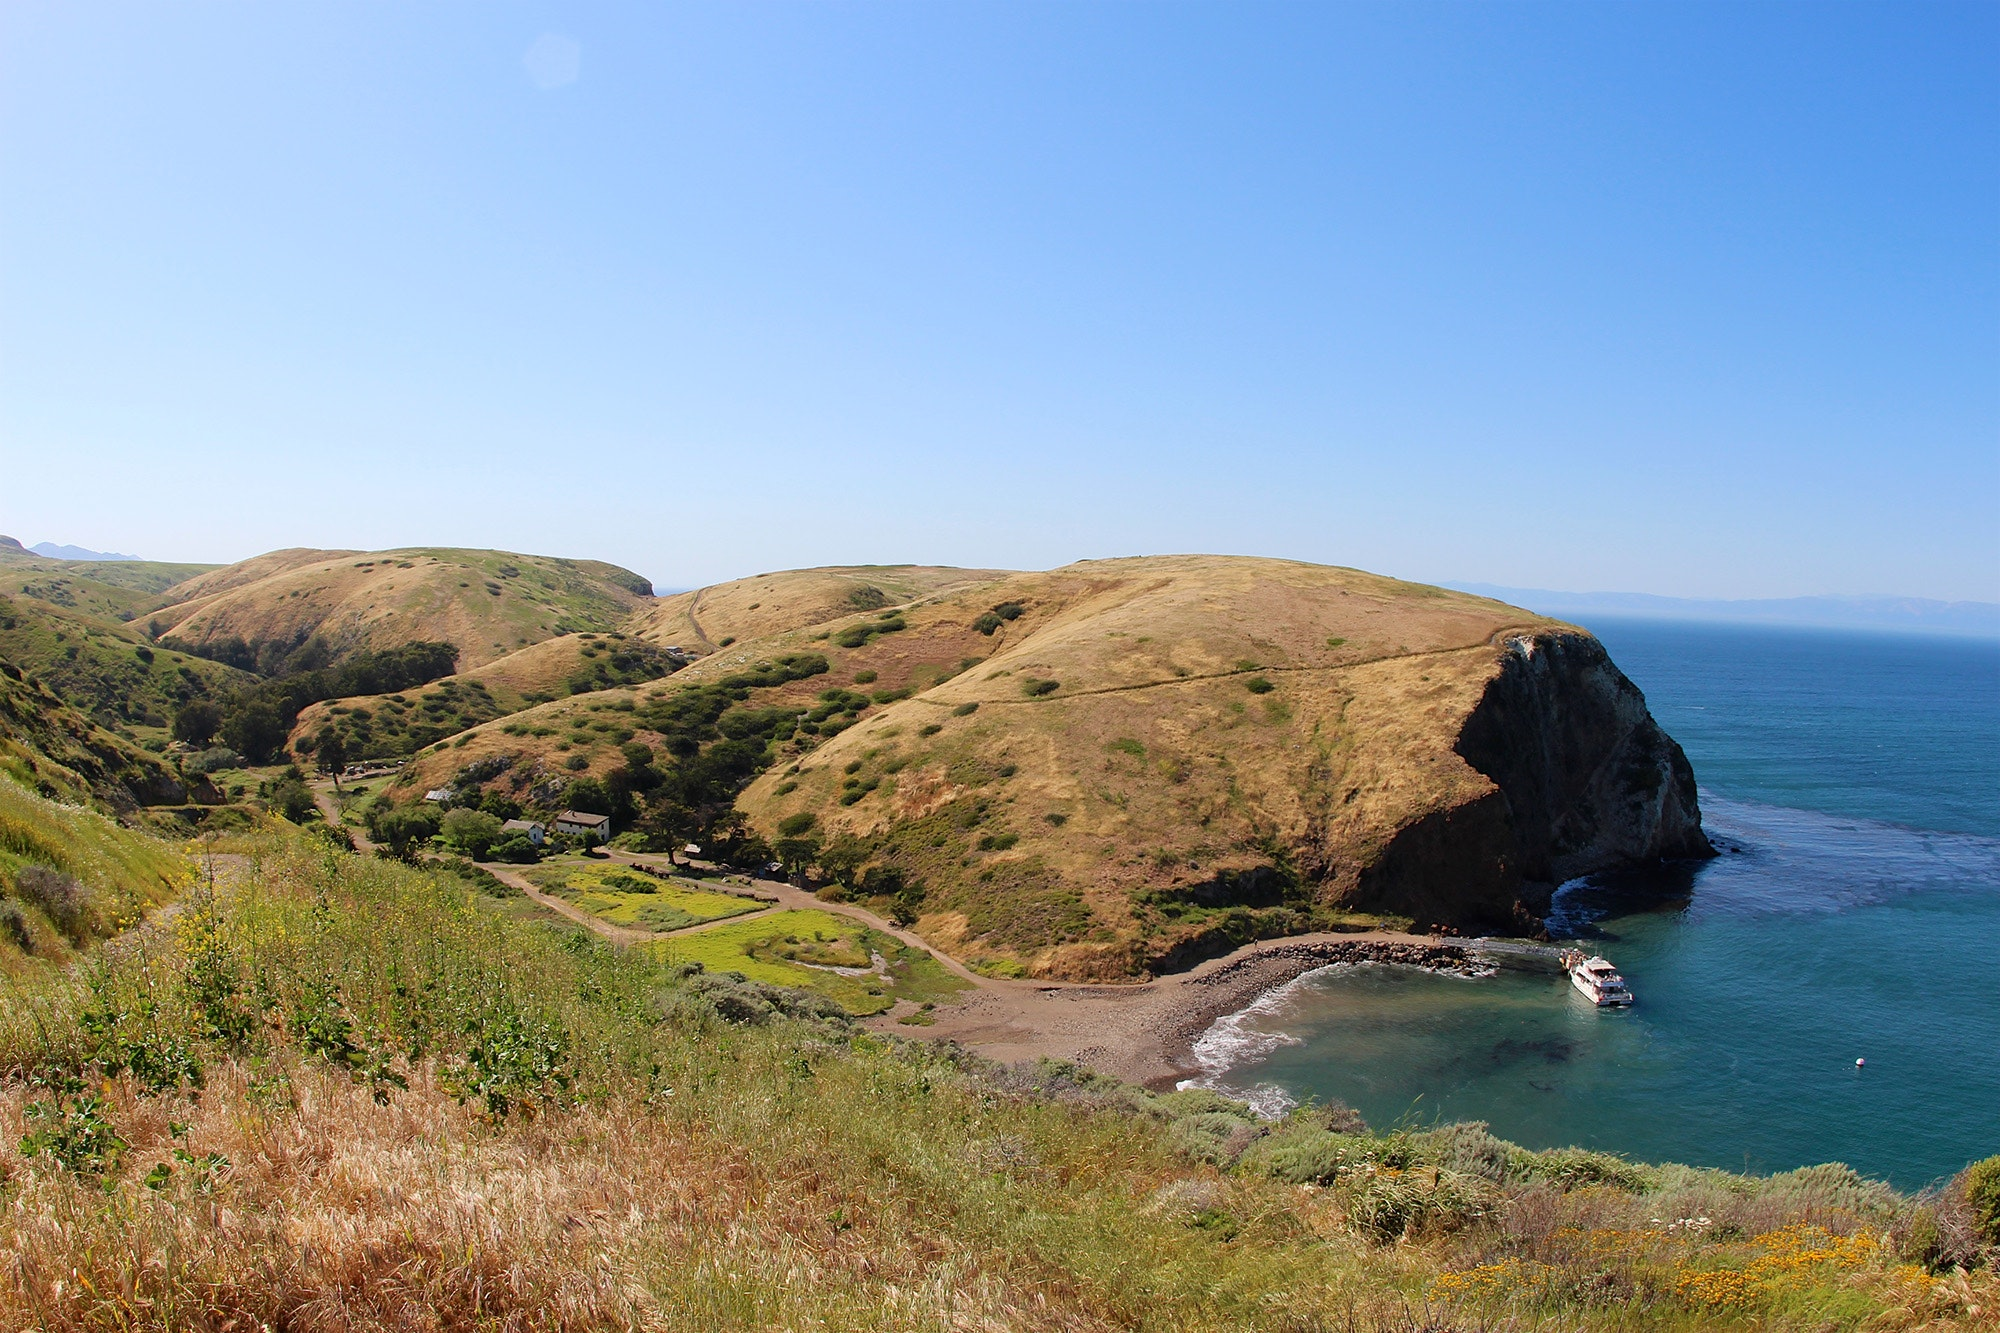 Scorpion Ranch Campground on Santa Cruz Island is just a half-mile walk from the beach at Scorpion Anchorage.